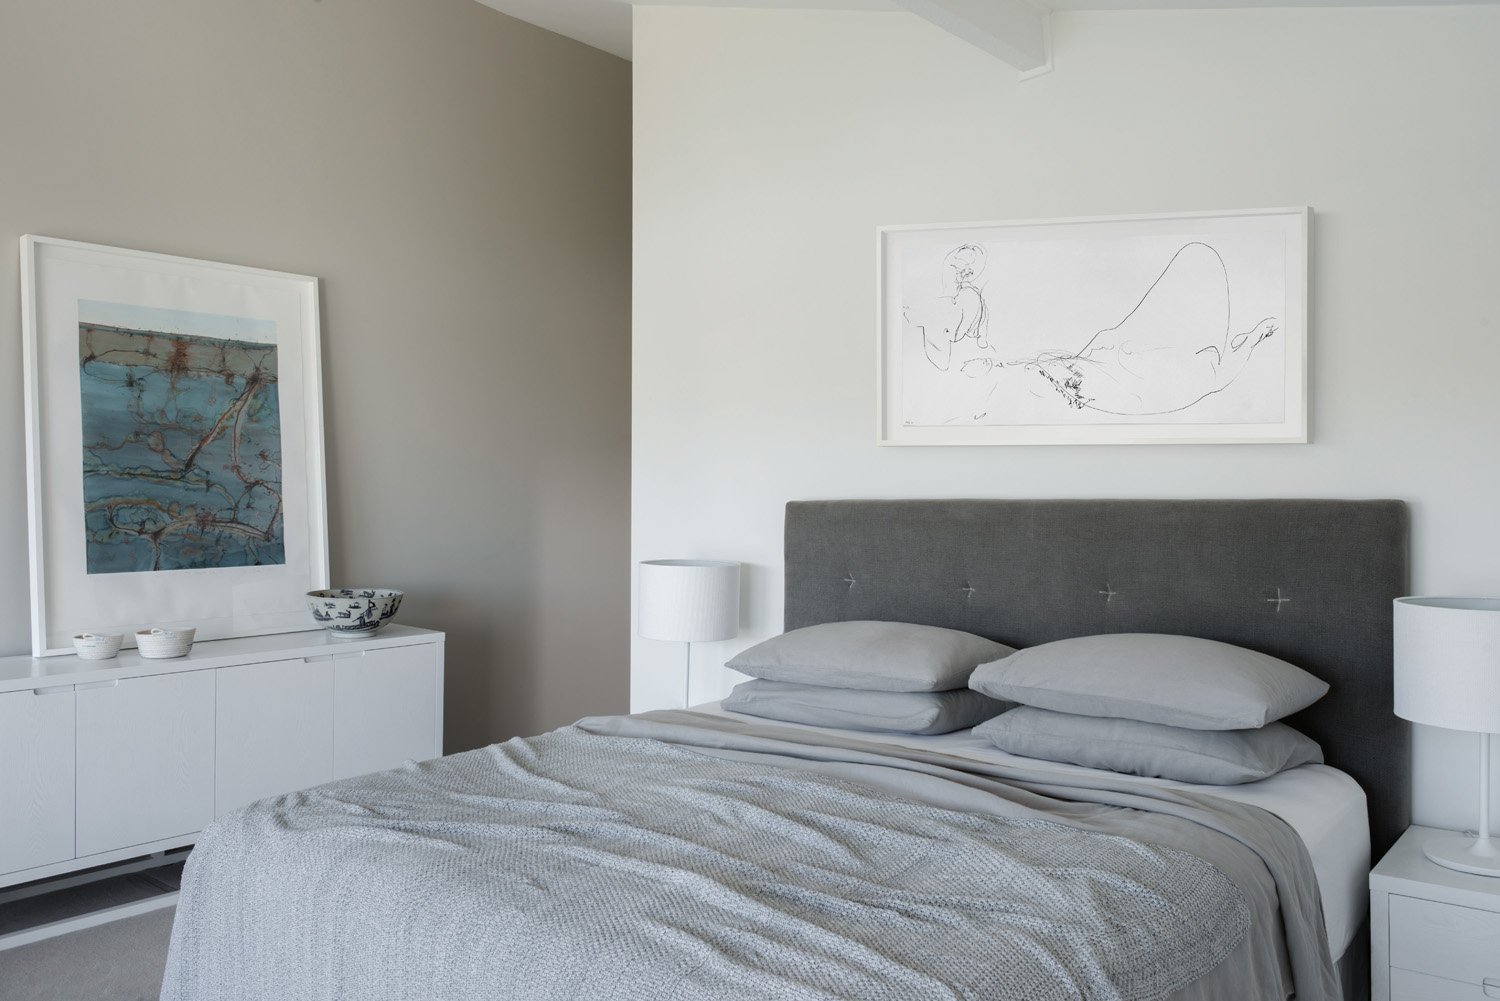 A linen bedhead adds texture to the space